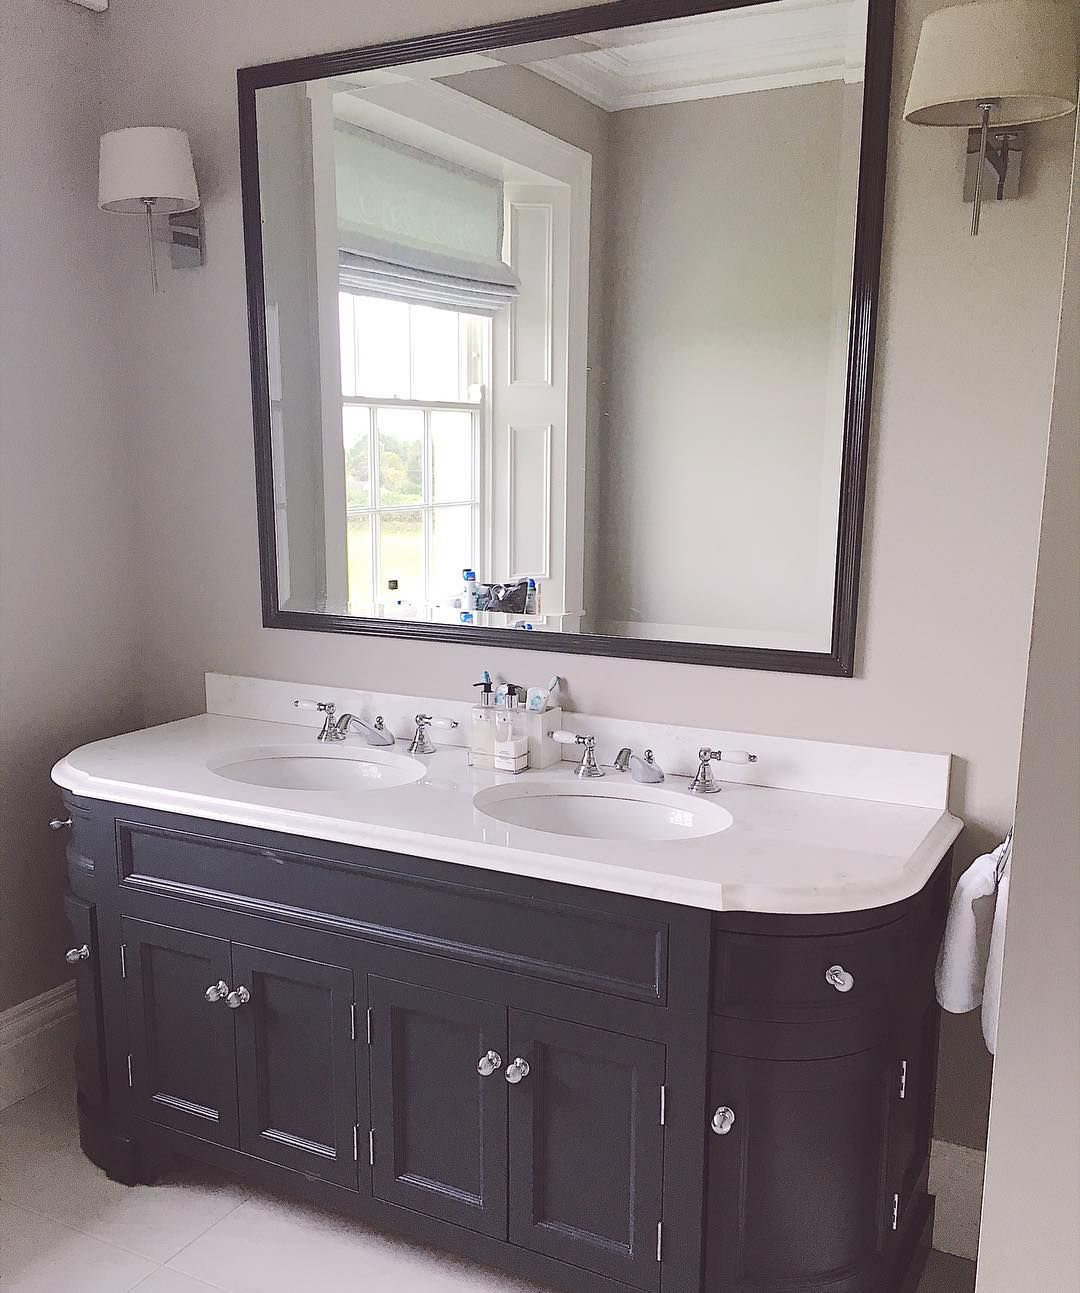 The Irish Country Home On Instagram My Vanity Unit Minus The 5000 Products It Takes To Try And Make Me St His And Hers Sinks Bathroom Renovation Vanity Units